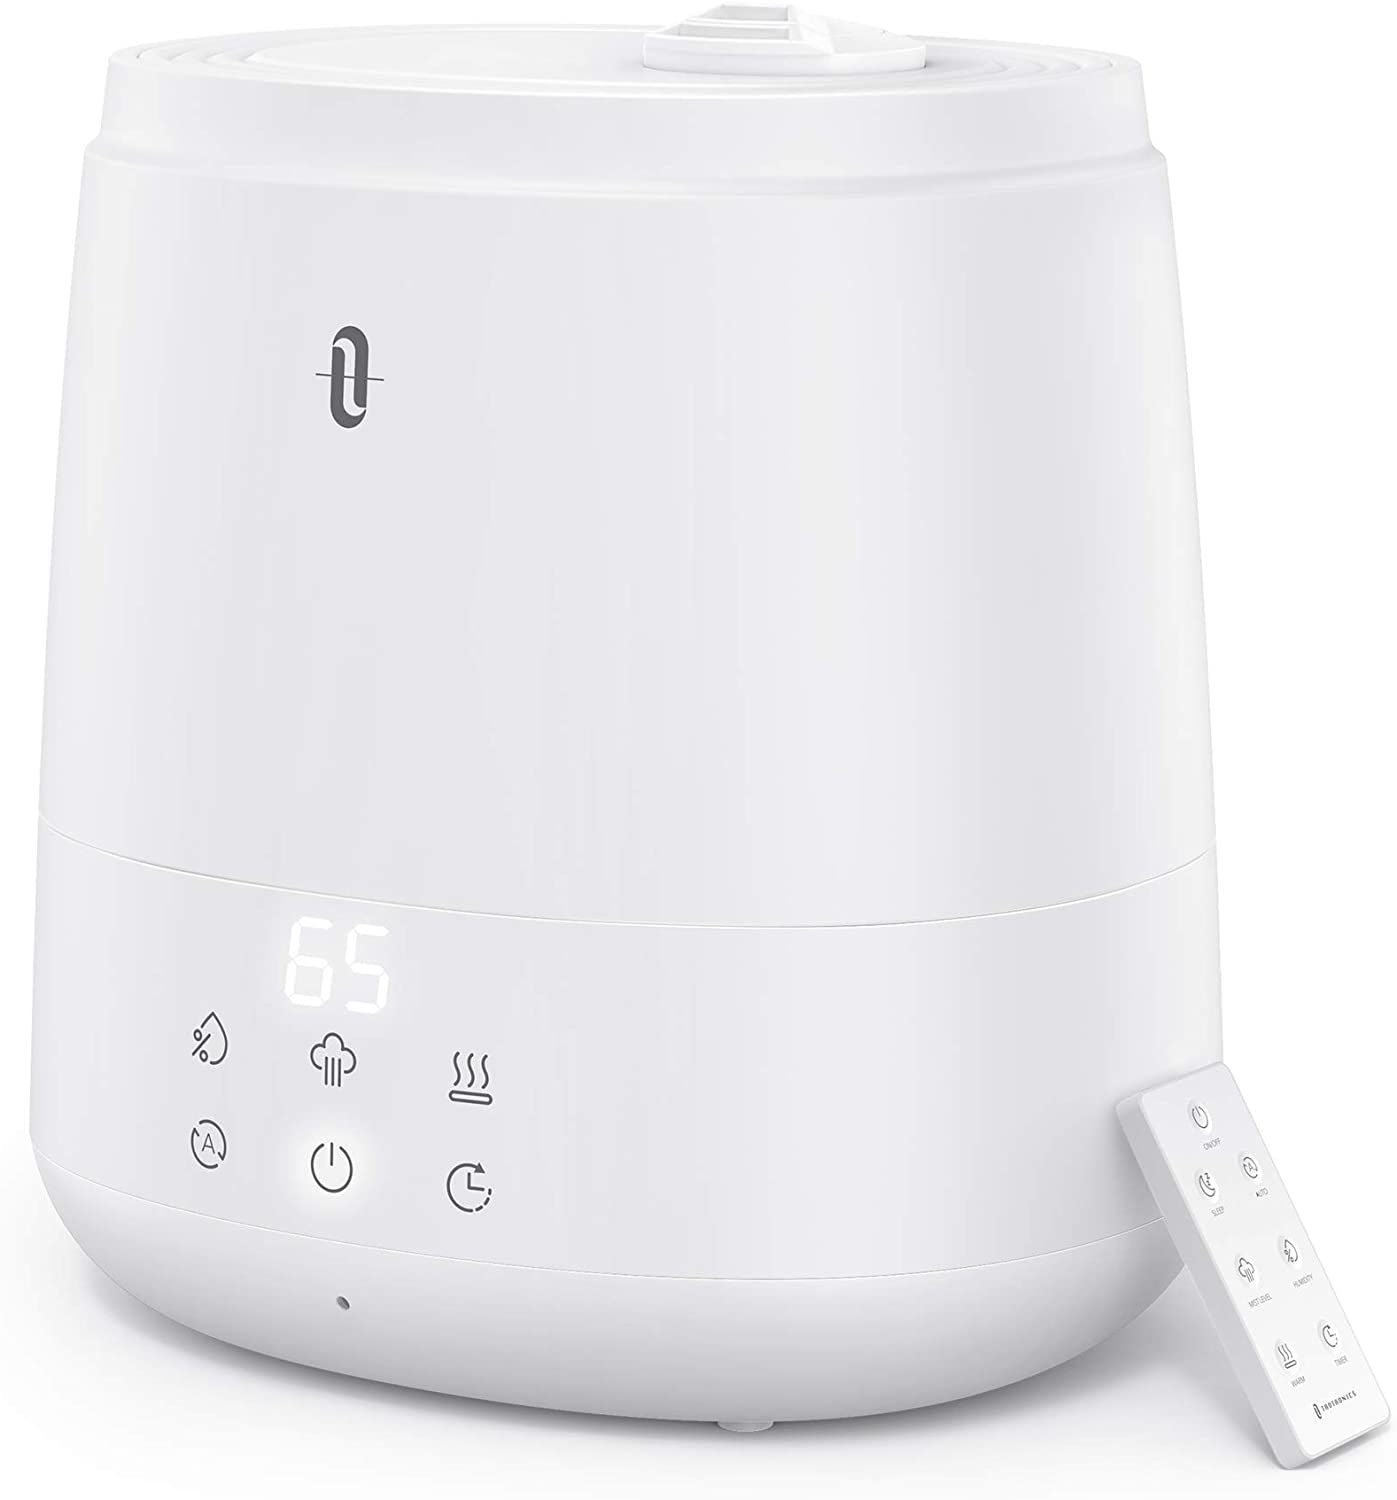 TaoTronics 6L Warm and Cool Mist Humidifier For Home